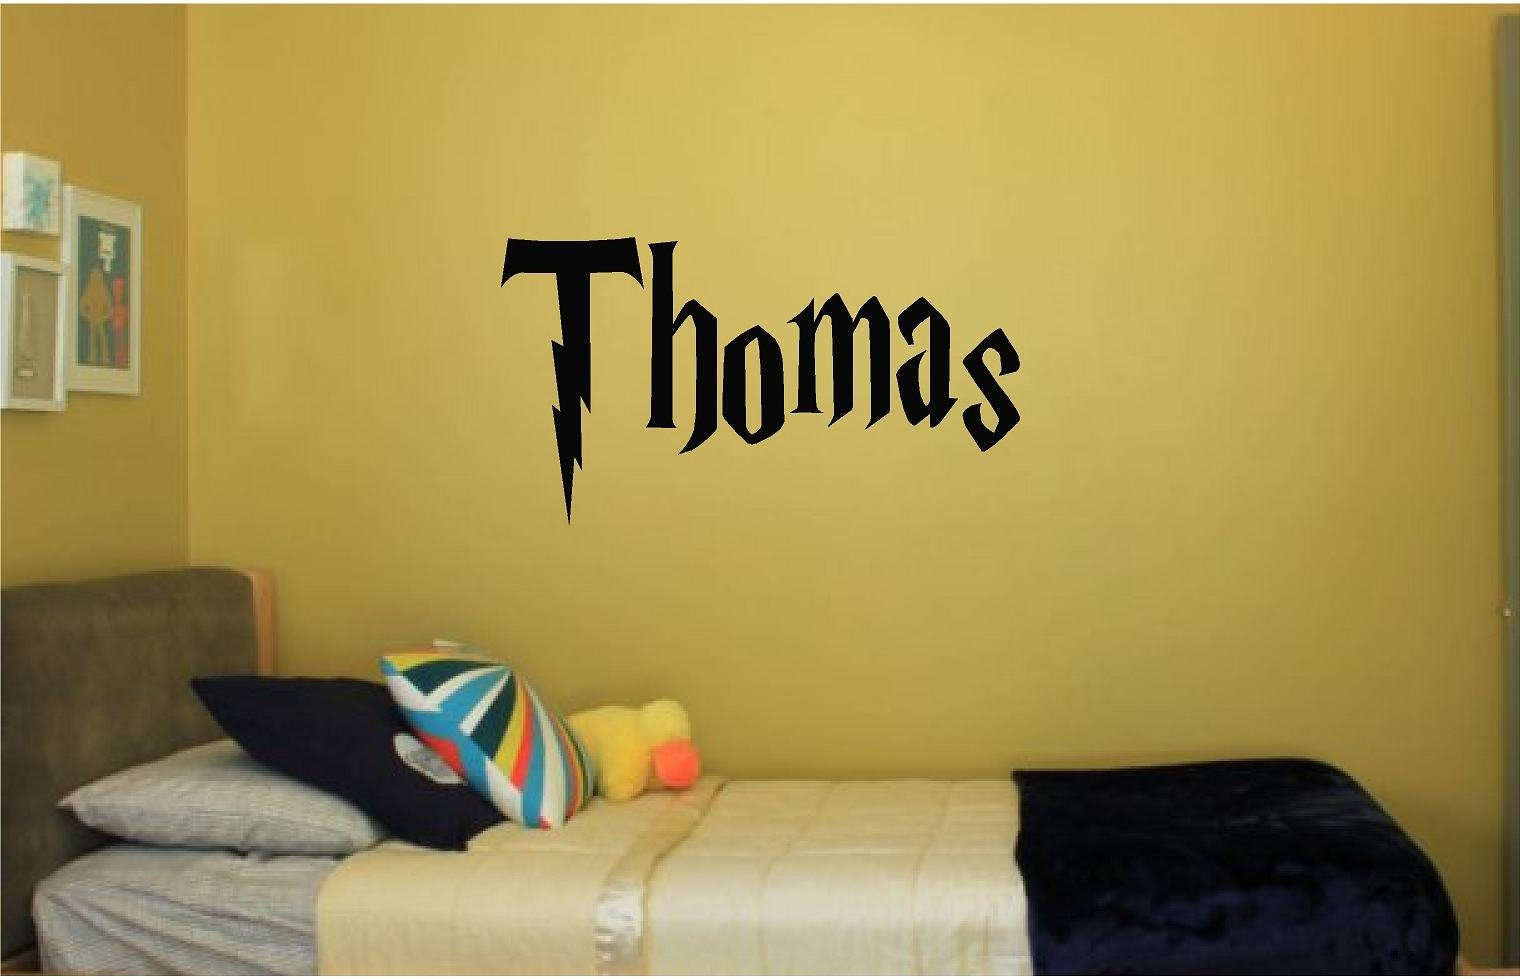 Harry Potter Decor Personalized Name Vinyl Wall Decal Boys | Etsy